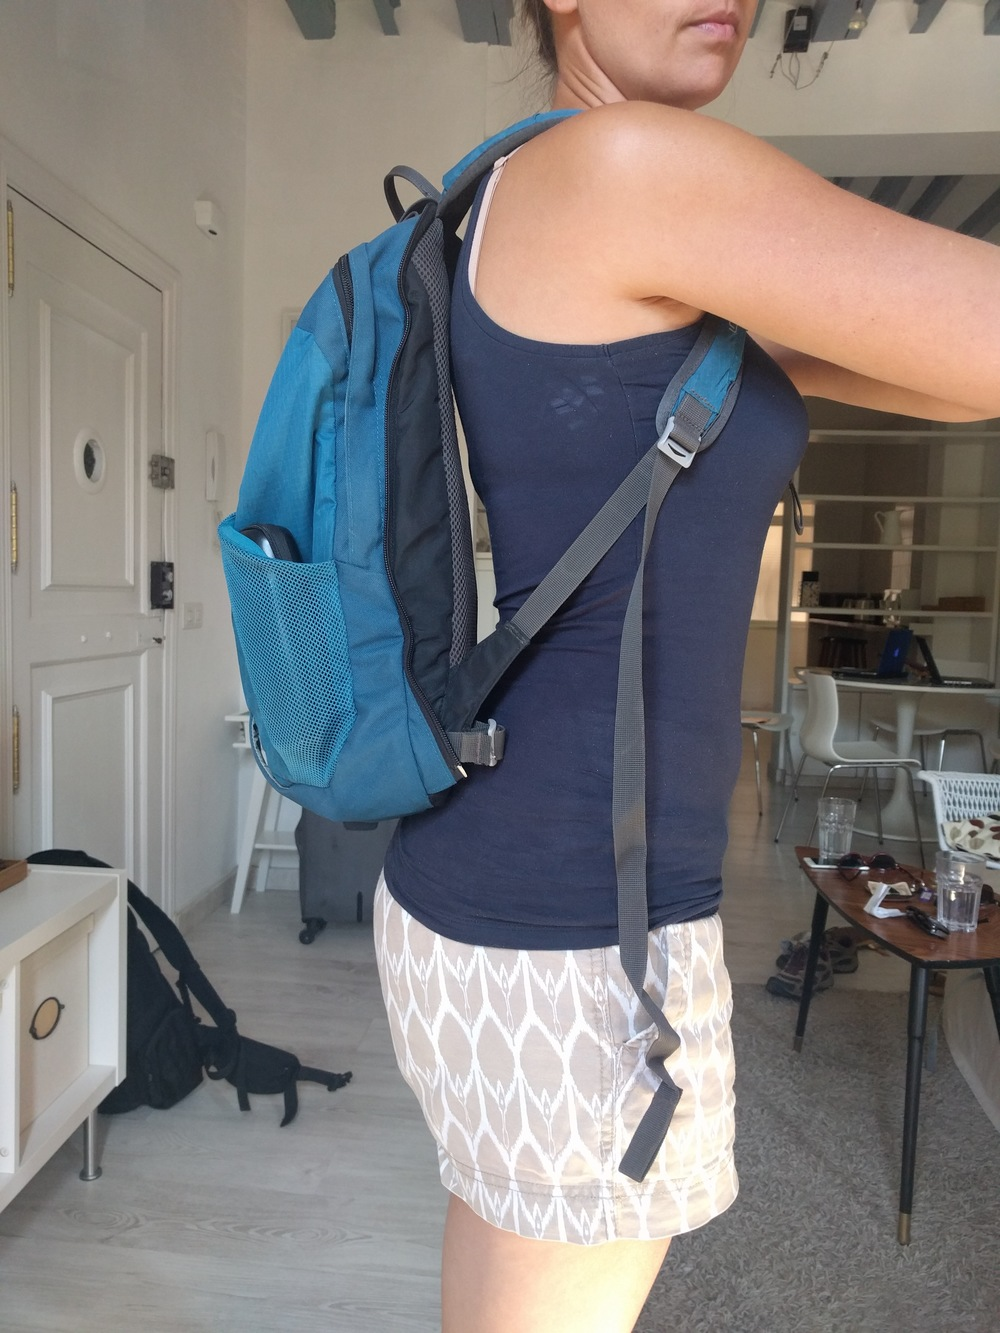 Tortuga Travel Backpack vs Osprey Farpoint 55 Travel Pack 10